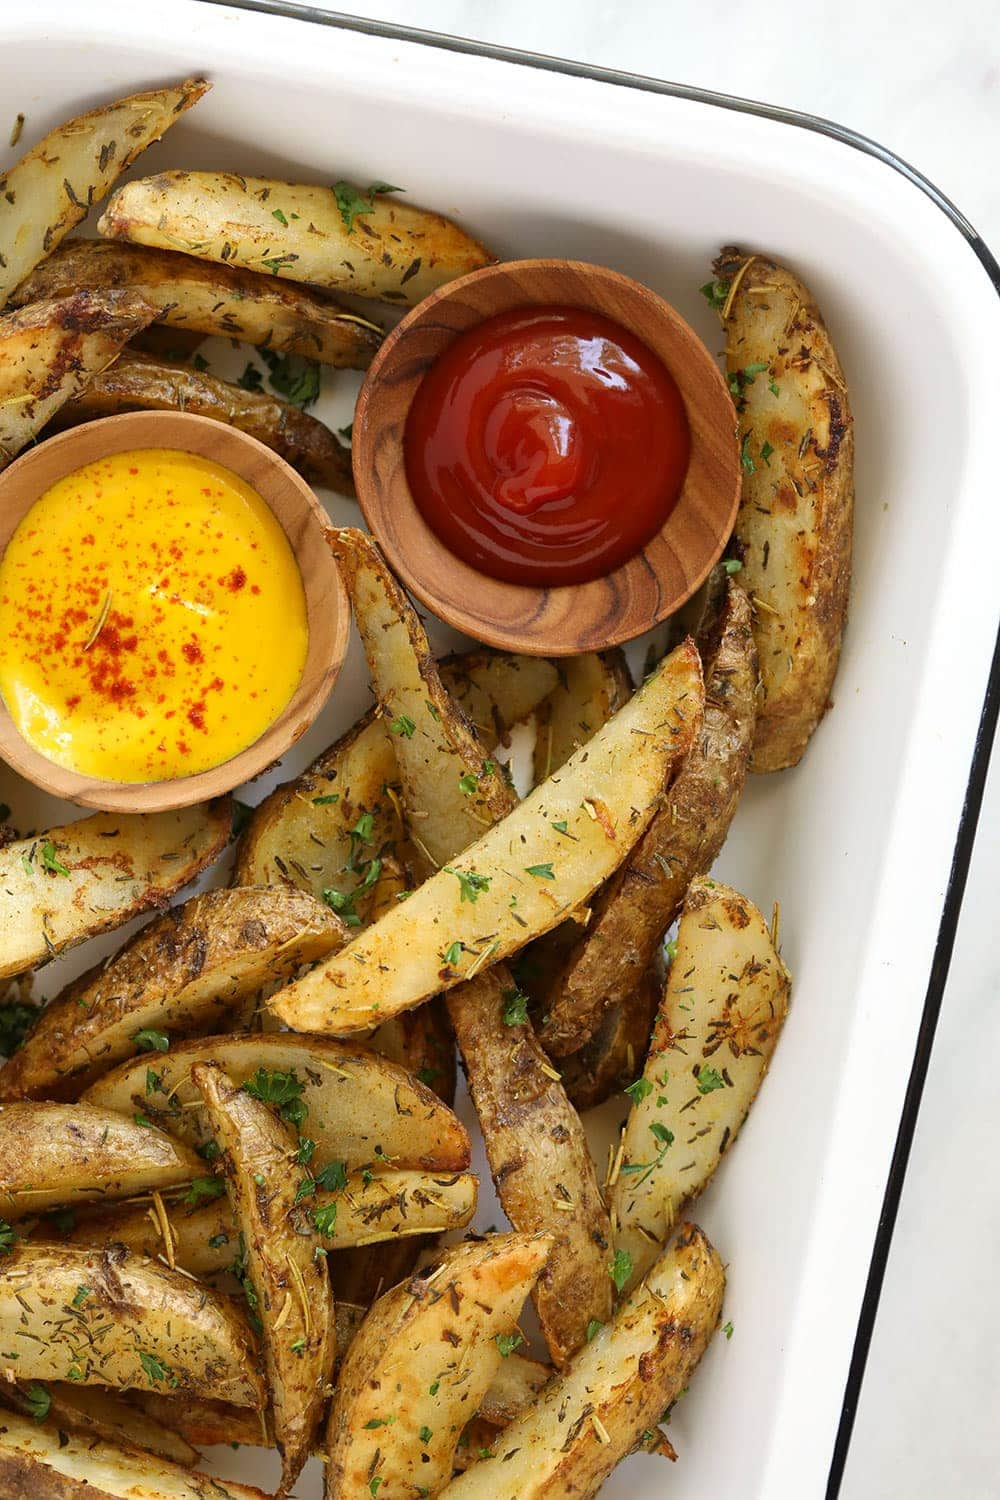 Potato wedges in a pan with ketchup and mustard.